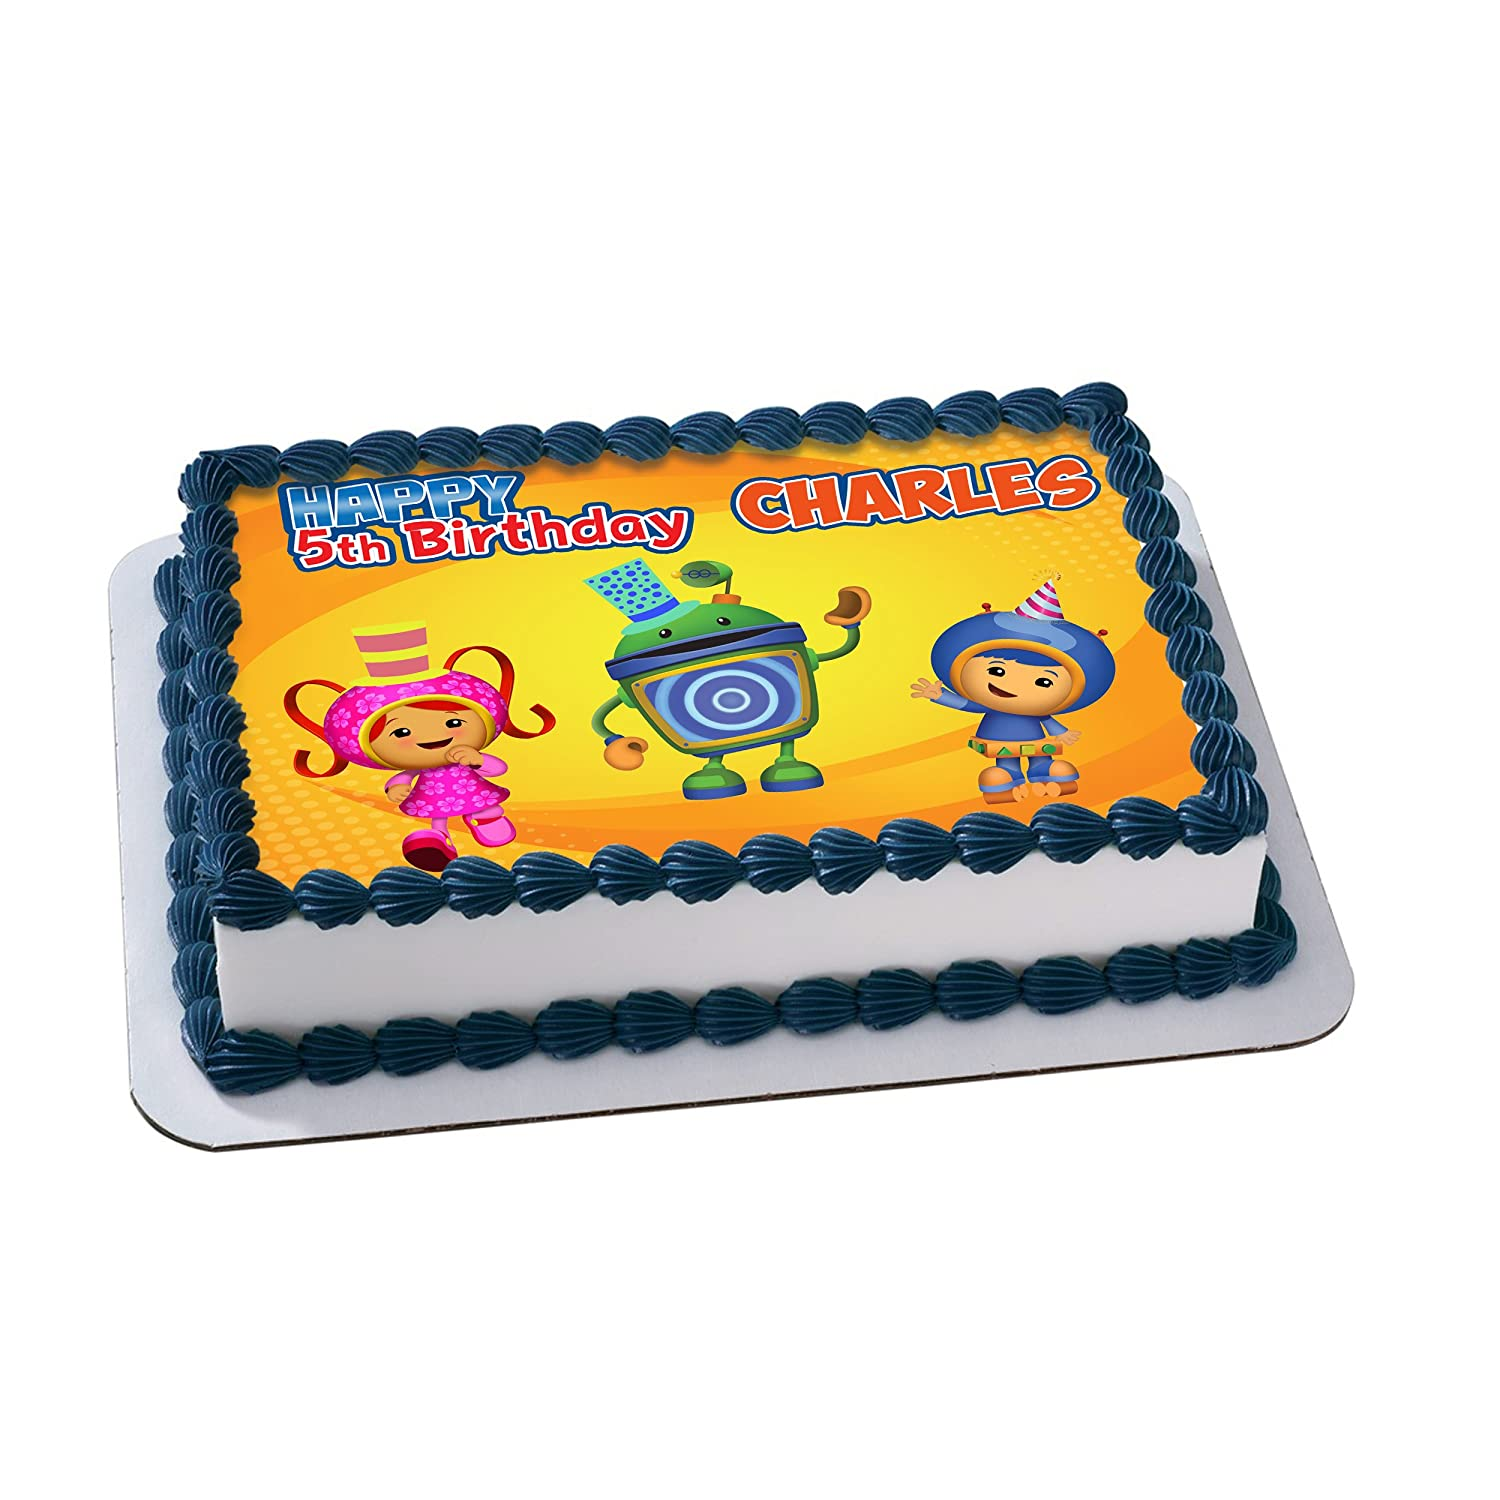 Team Umizoomi Edible Image Cake Topper Personalized Icing Sugar Paper A4 Sheet Frosting Photo Amazon Grocery Gourmet Food